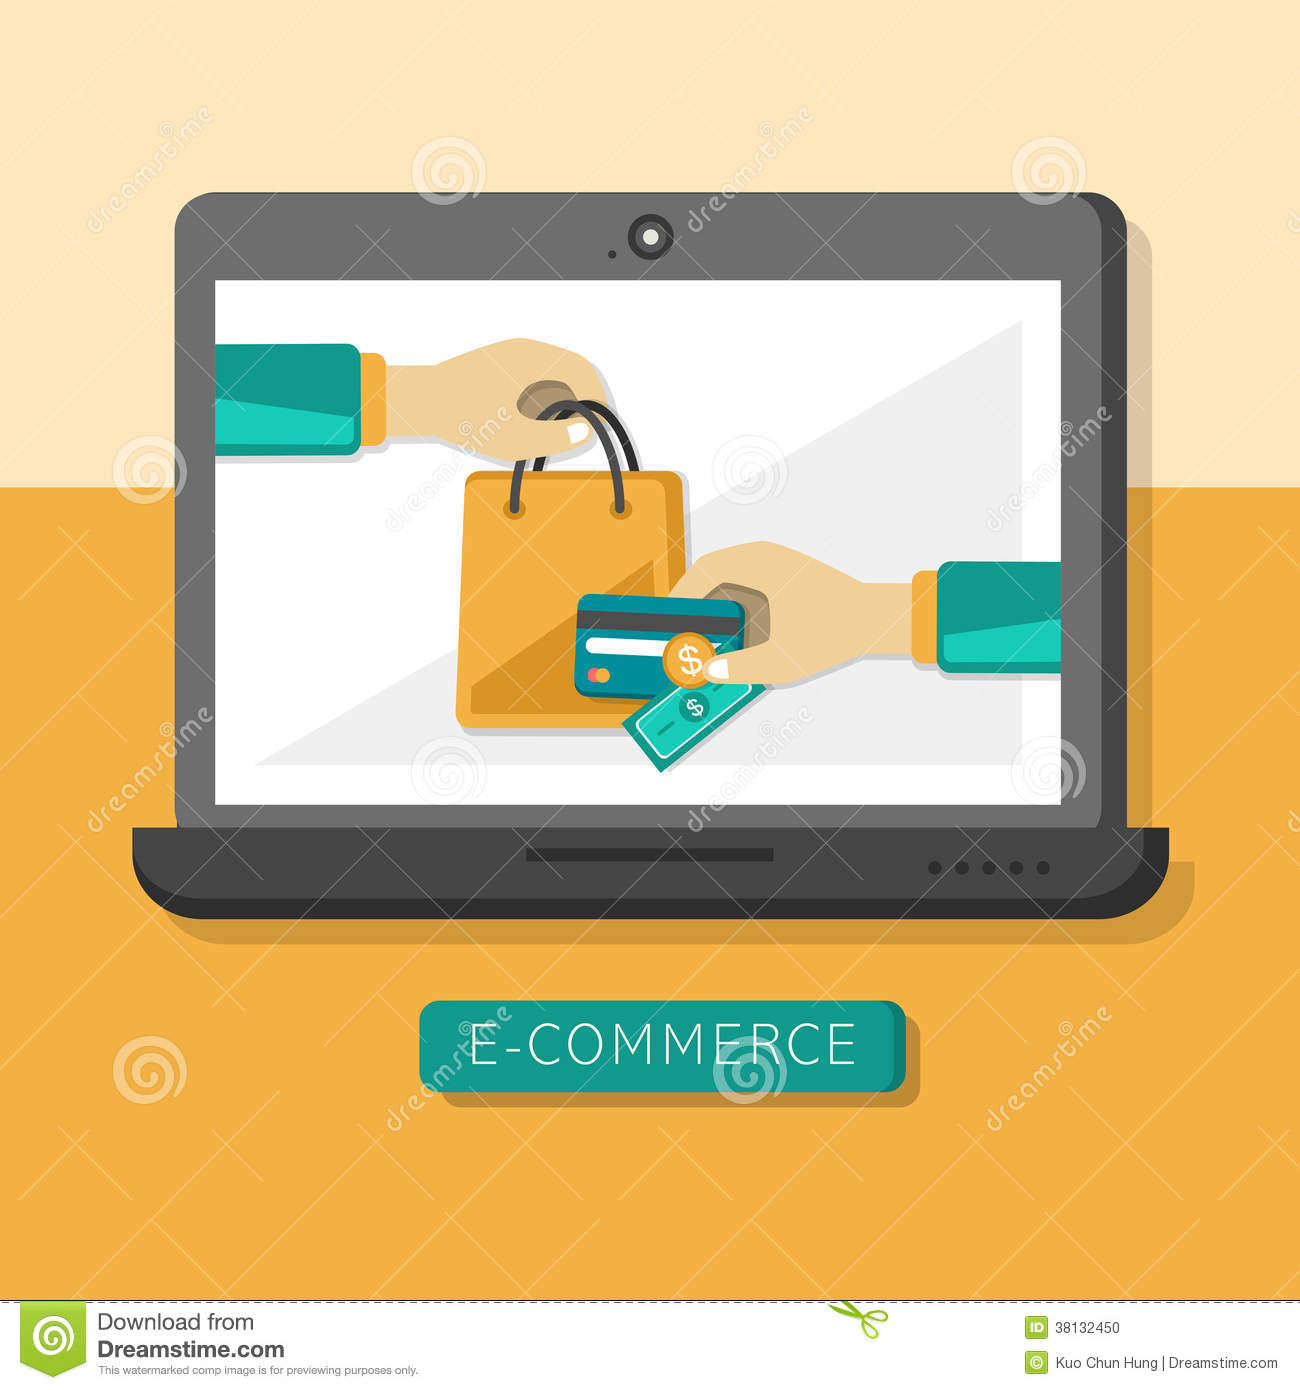 Design Outlet Online Flat Design Concept With Icons Of E Commerce Ideas Symbol